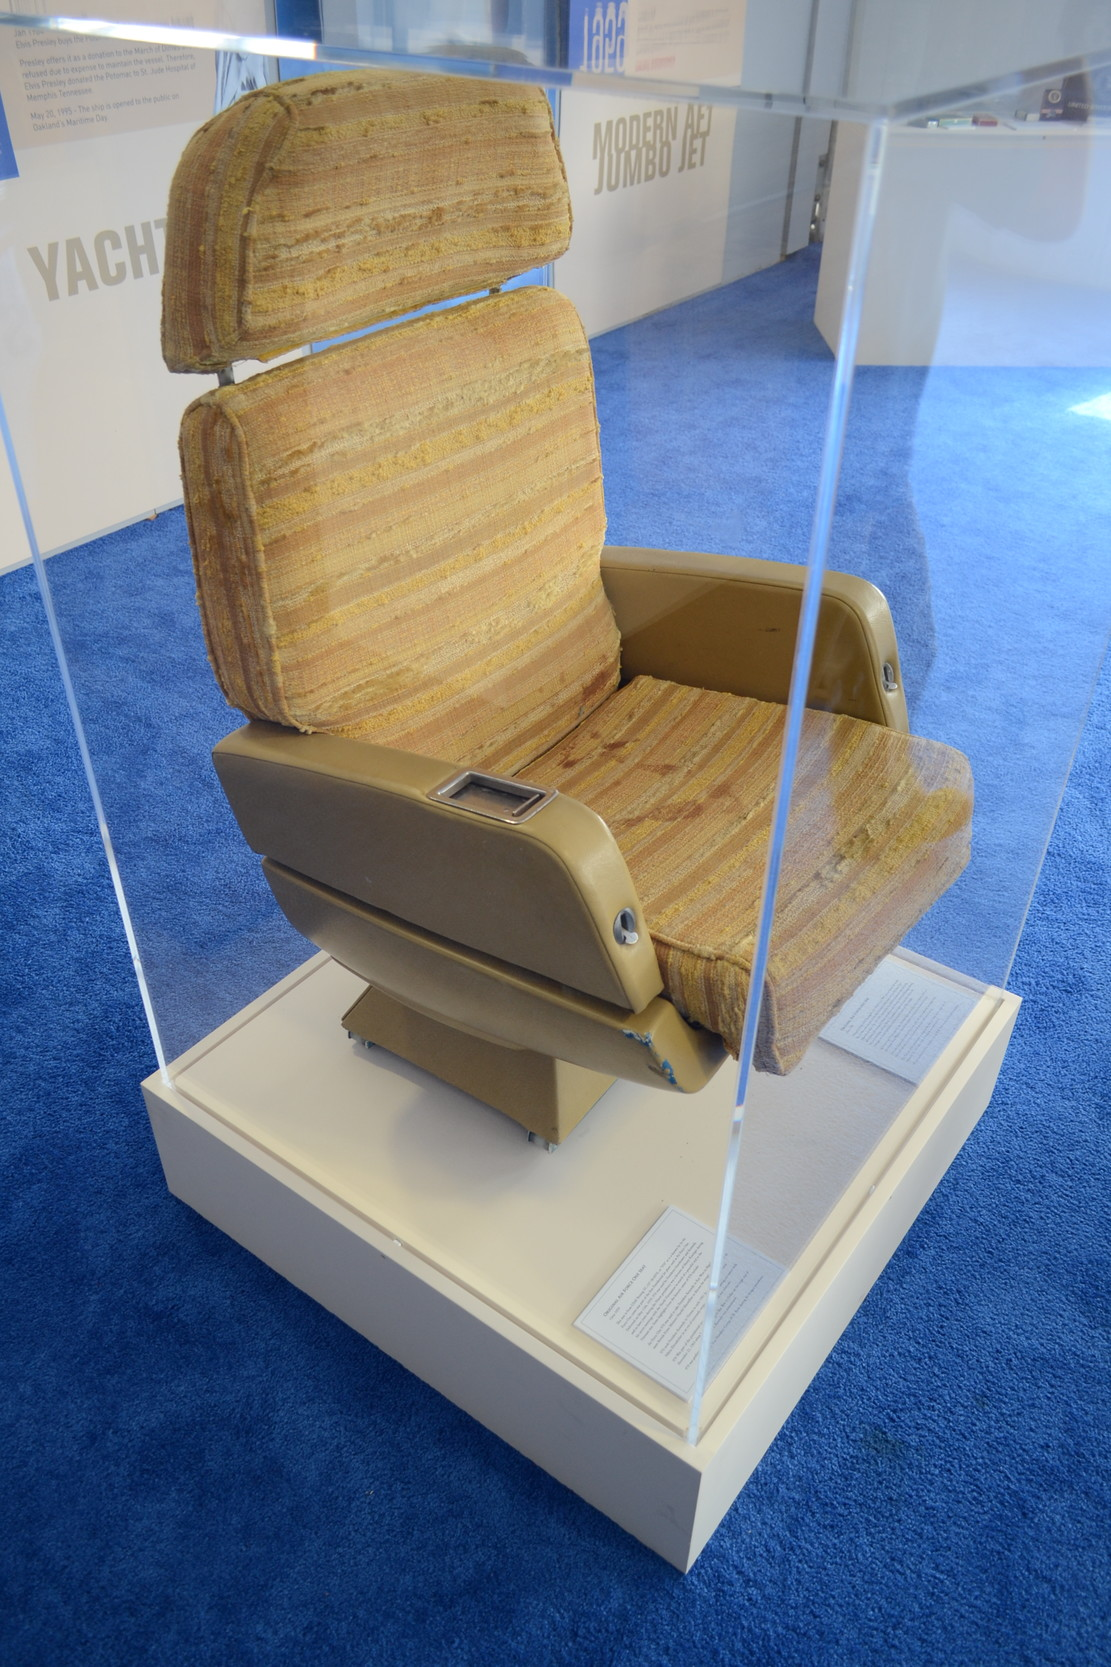 This seat was pulled from JFK's Air Force One plane, which he had personally used.